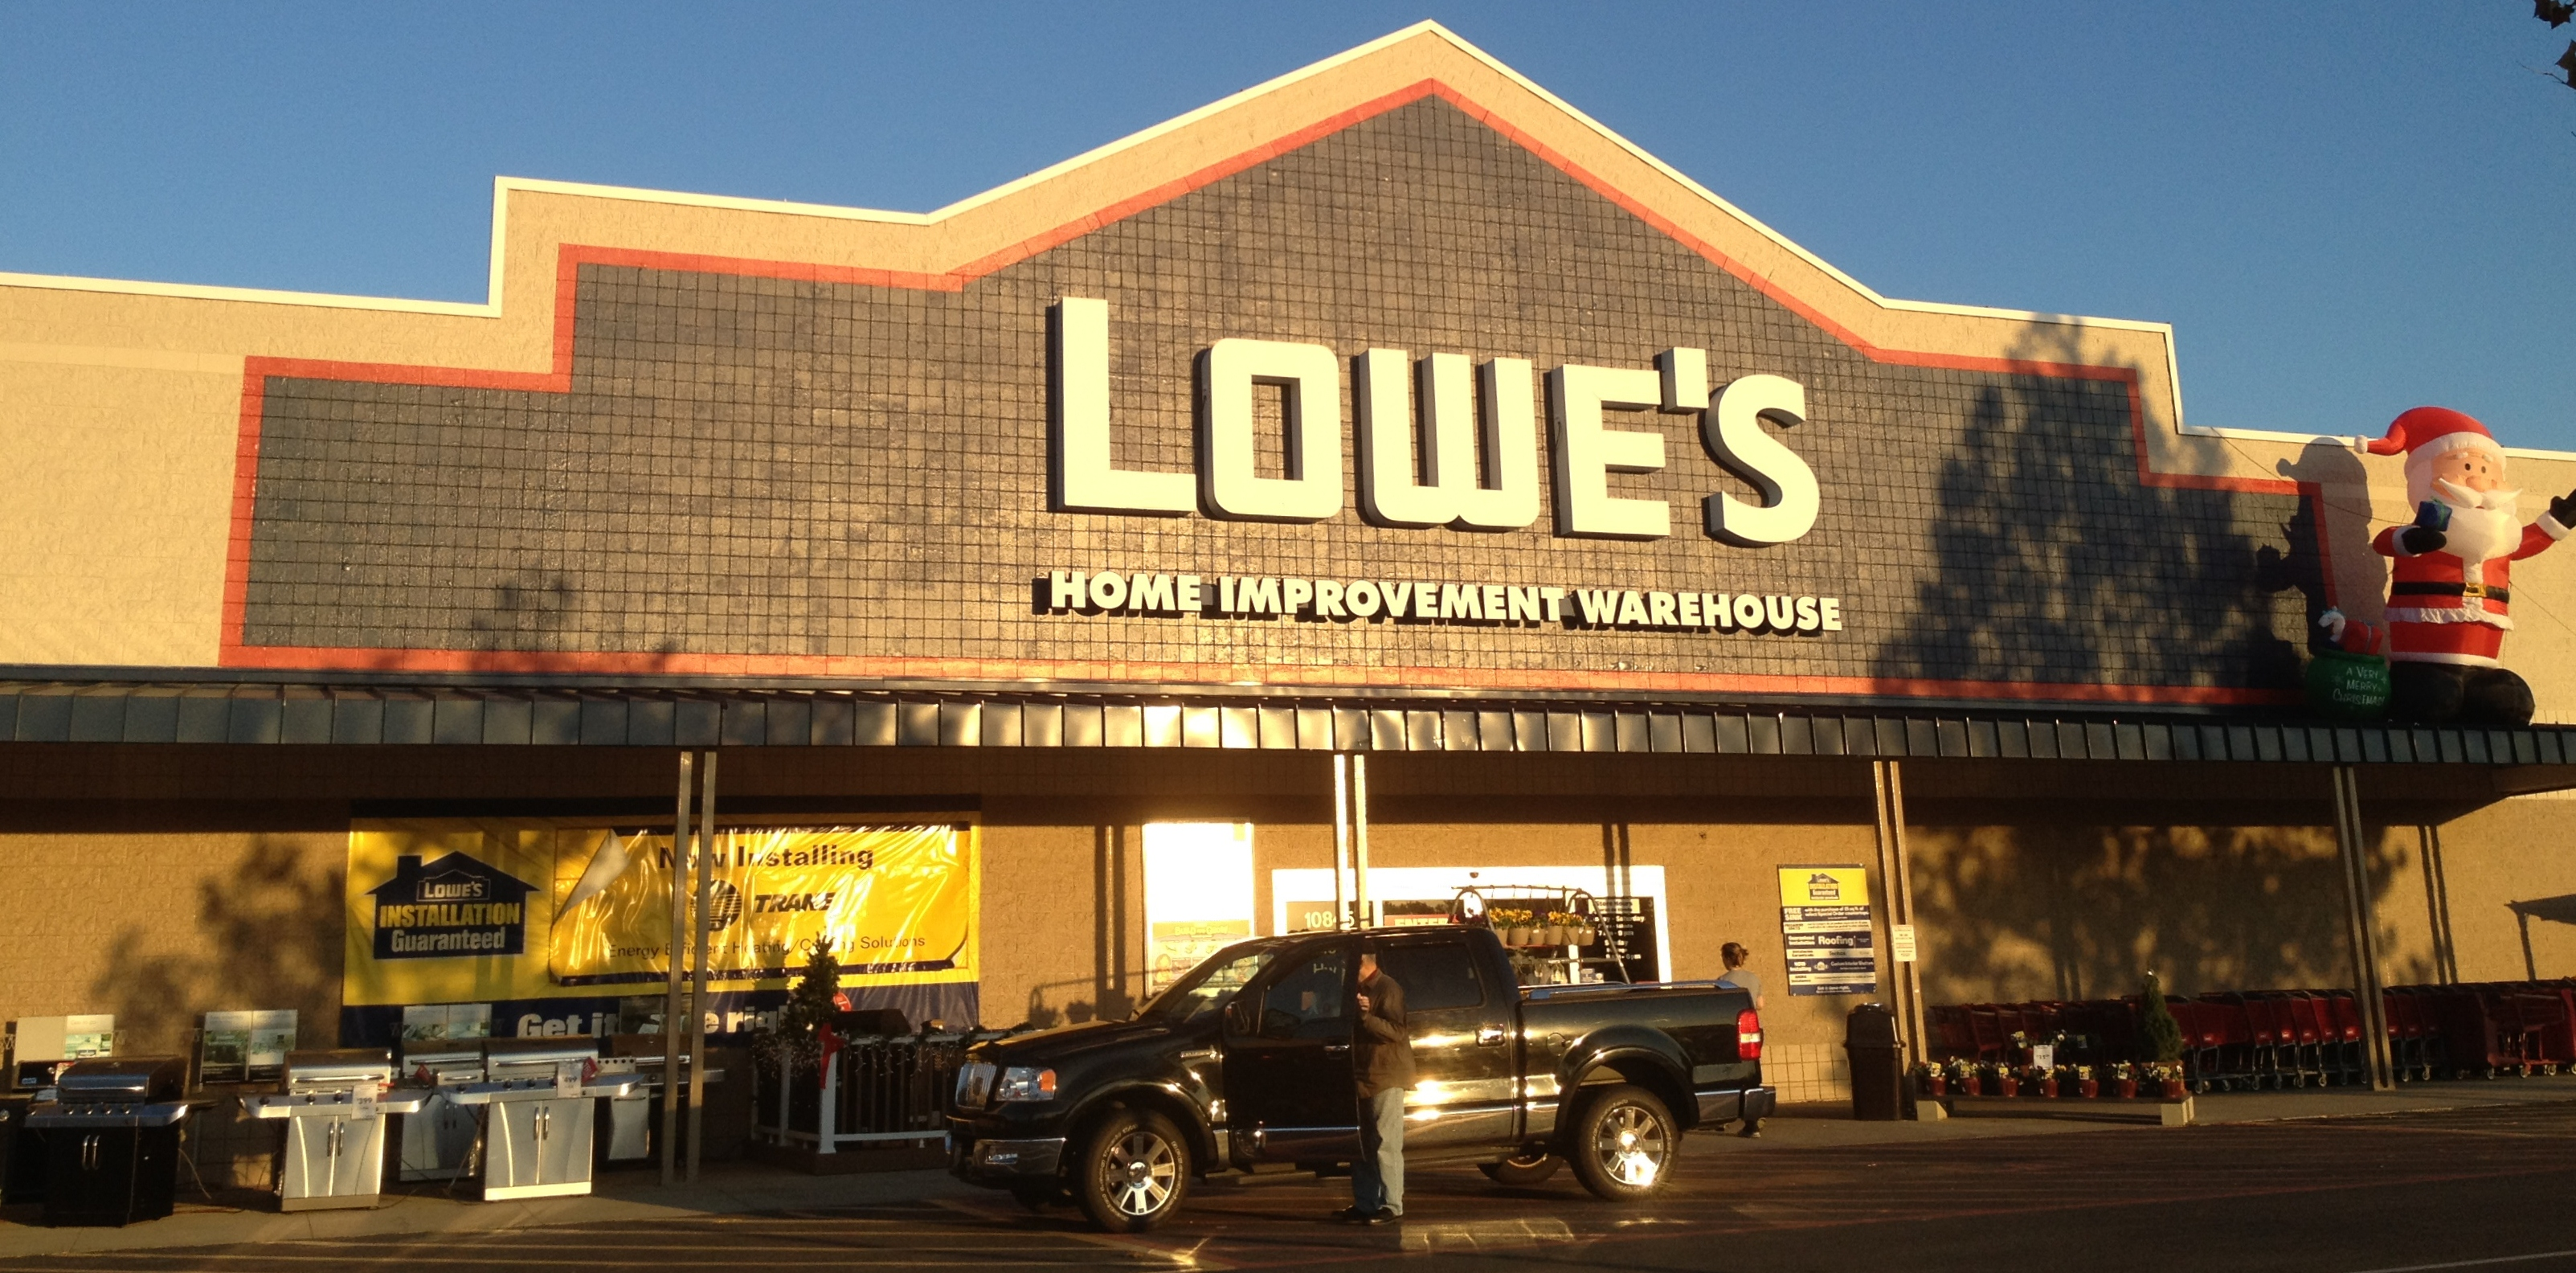 comparing lowes and home depot market structure Cramer on lowe's vs home depot: i'm changing my opinion in the home improvement space, lowe's and home depot have cornered the market, and lately cramer has witnessed a strange up 73 percent versus 65 percent for home depot additionally, lowe's posted 40 percent earnings per.